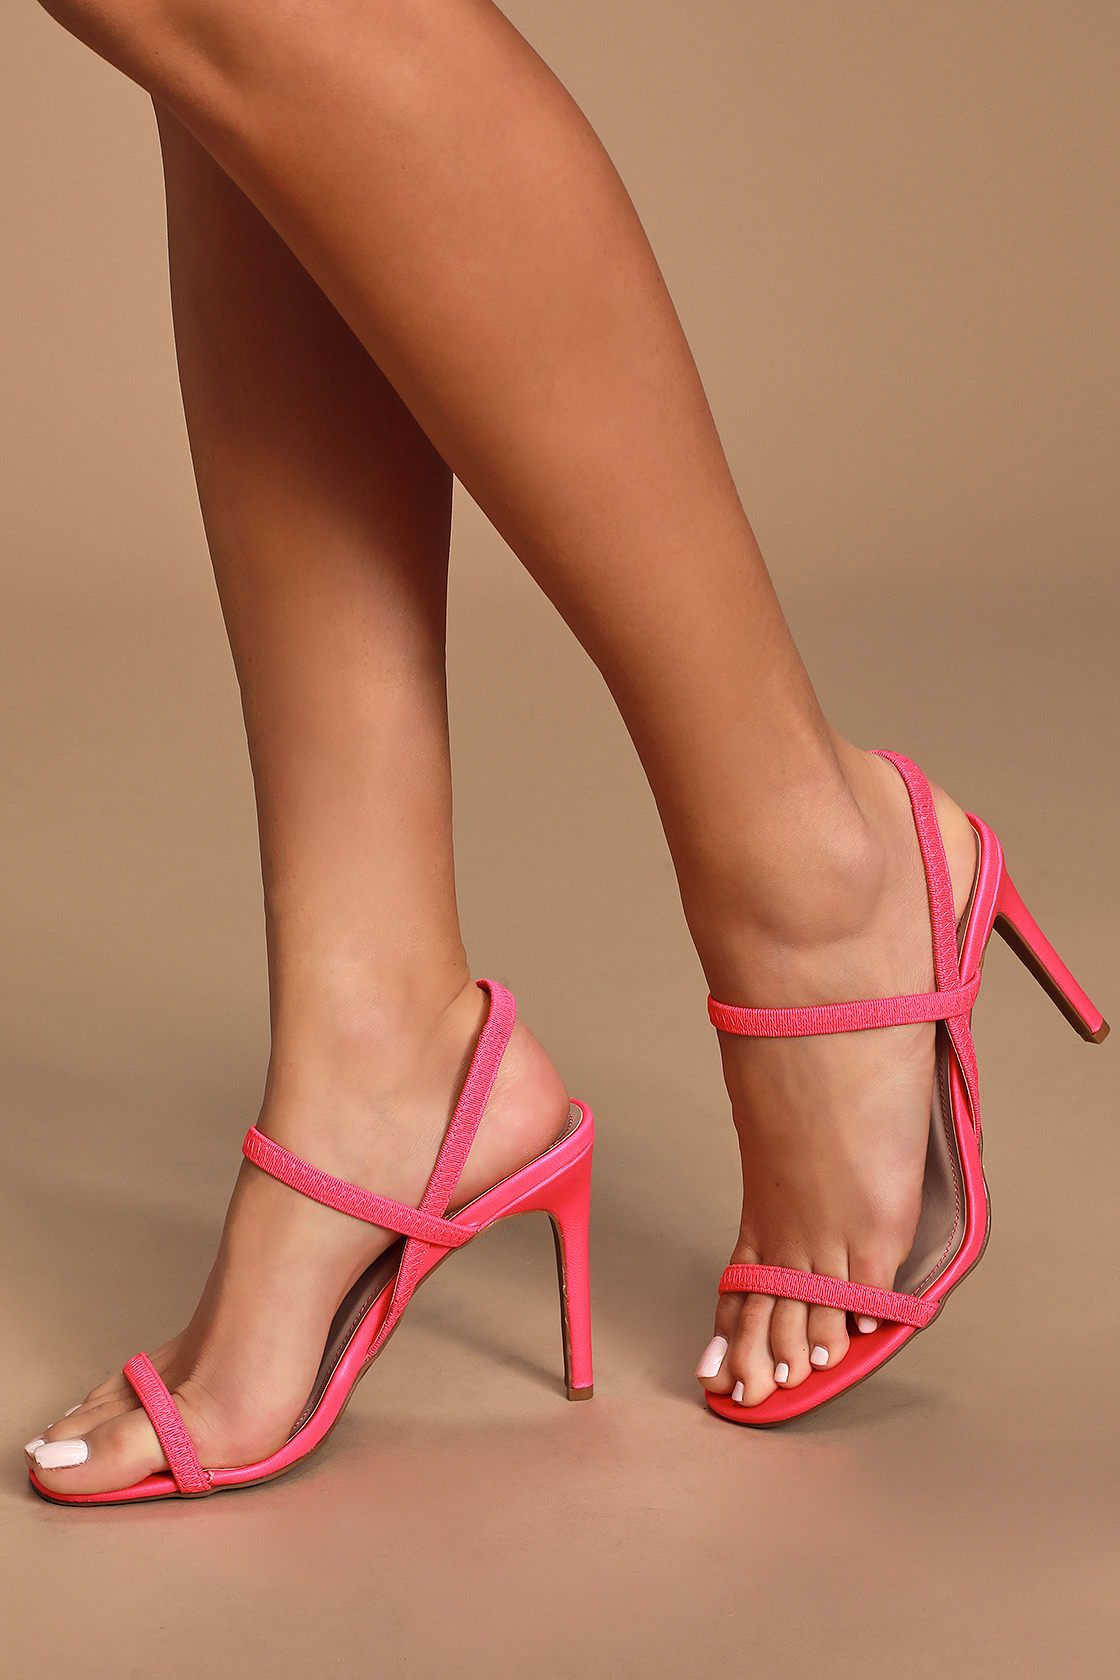 fantastic savings great deals timeless design Babie Neon Pink Strappy High Heel Sandals in 2020 | Pink strappy ...